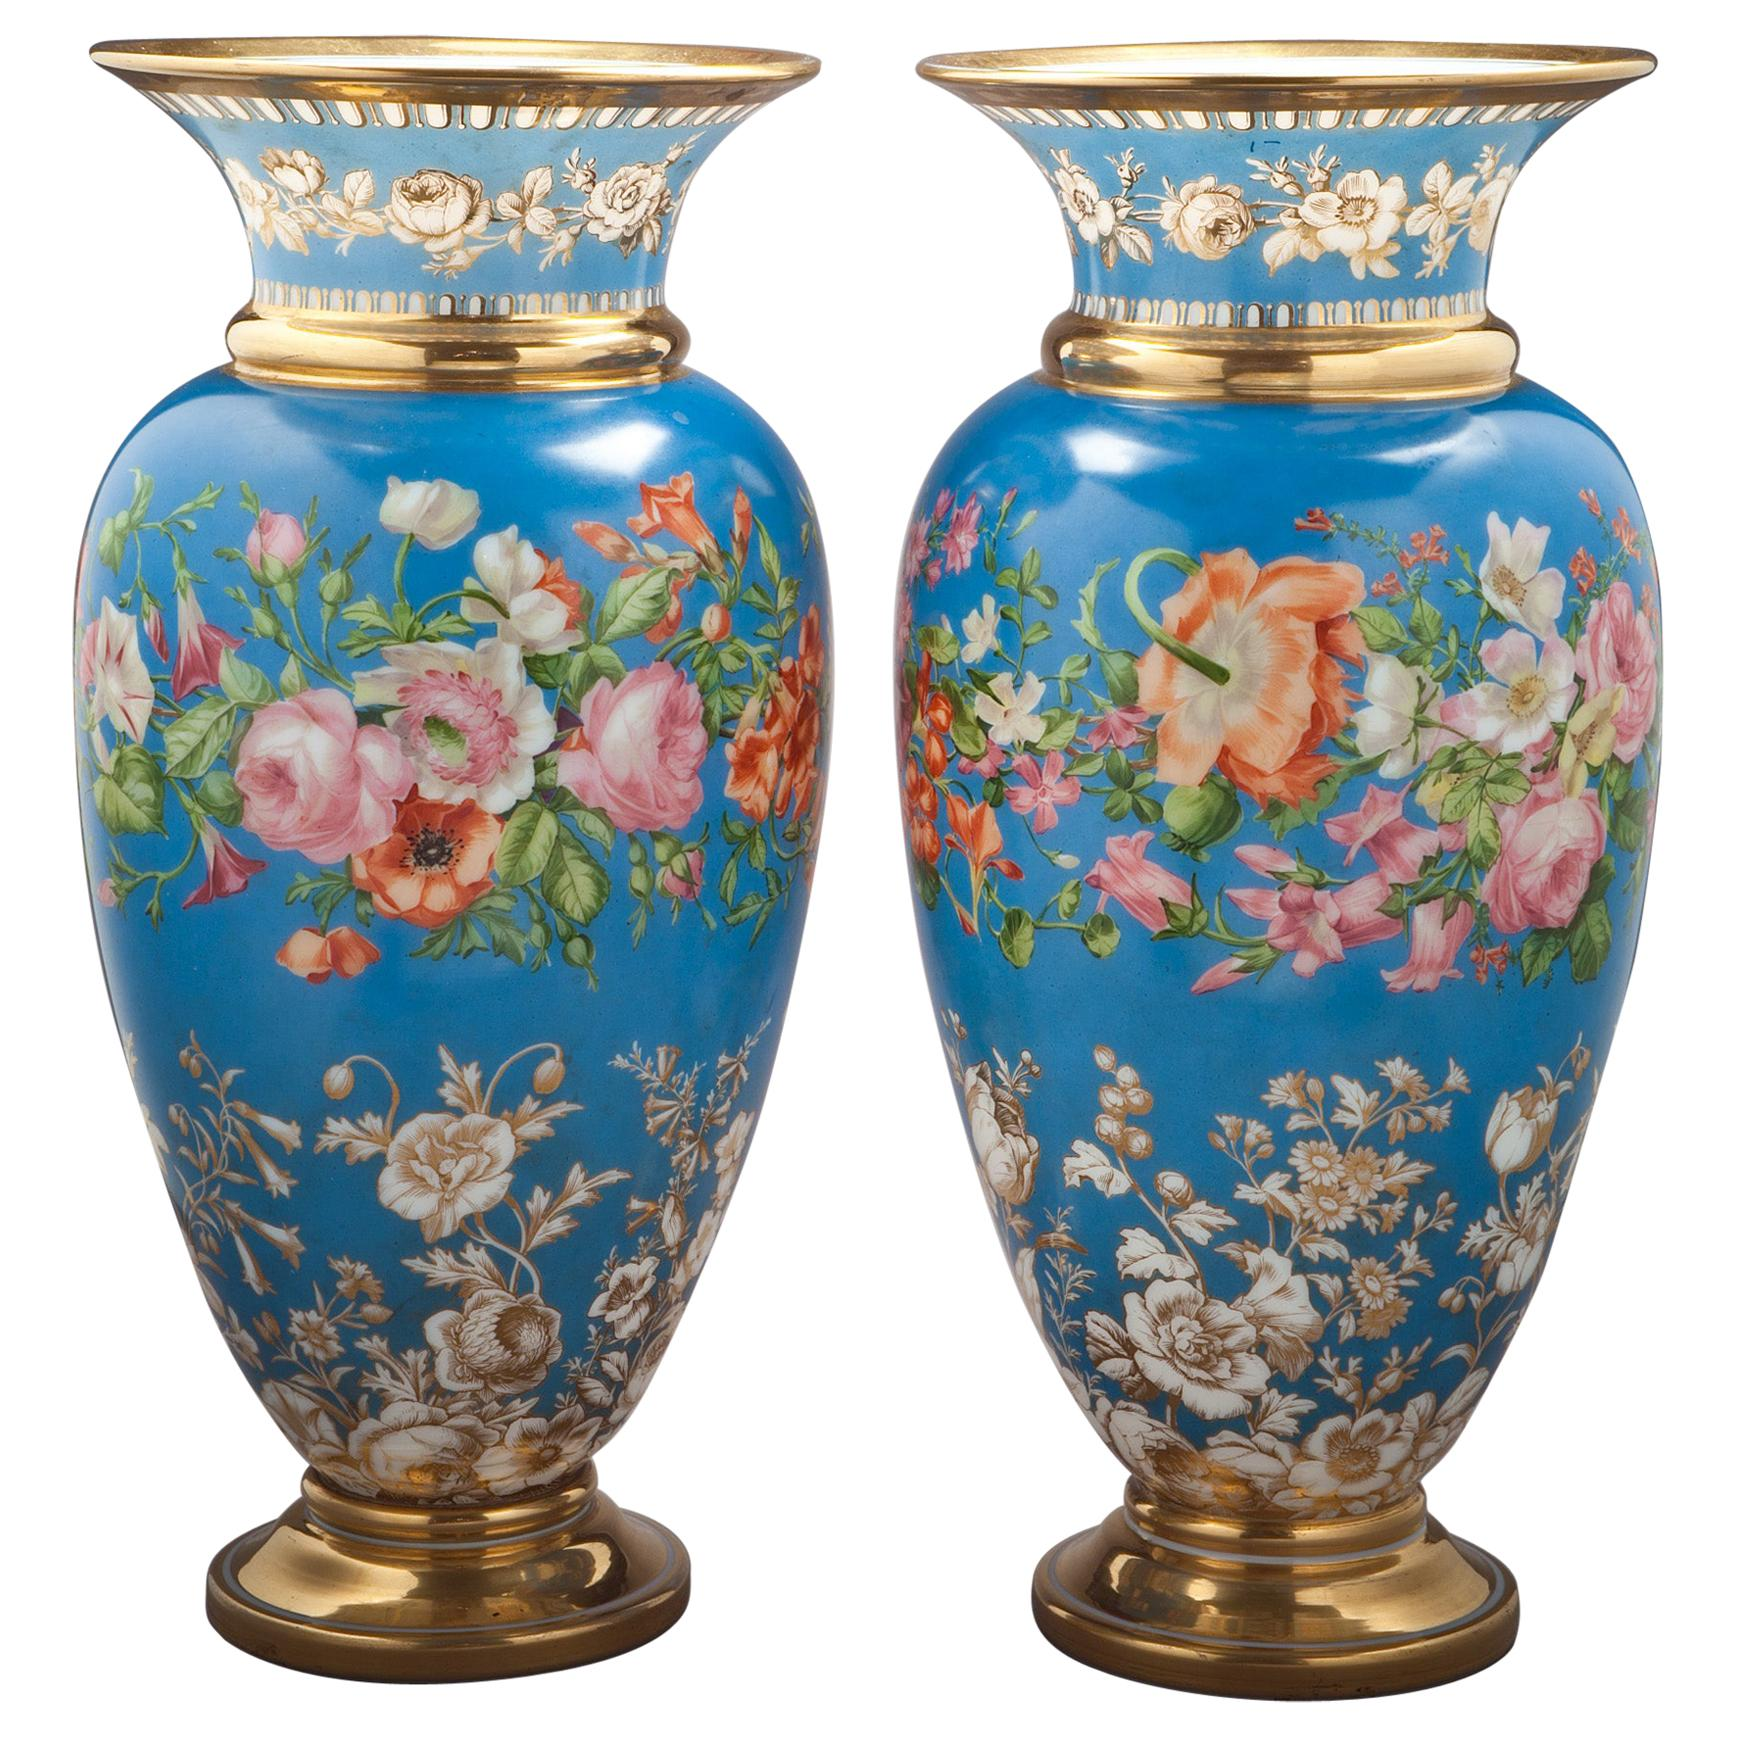 Pair of Large French Opaline Vases, circa 1830